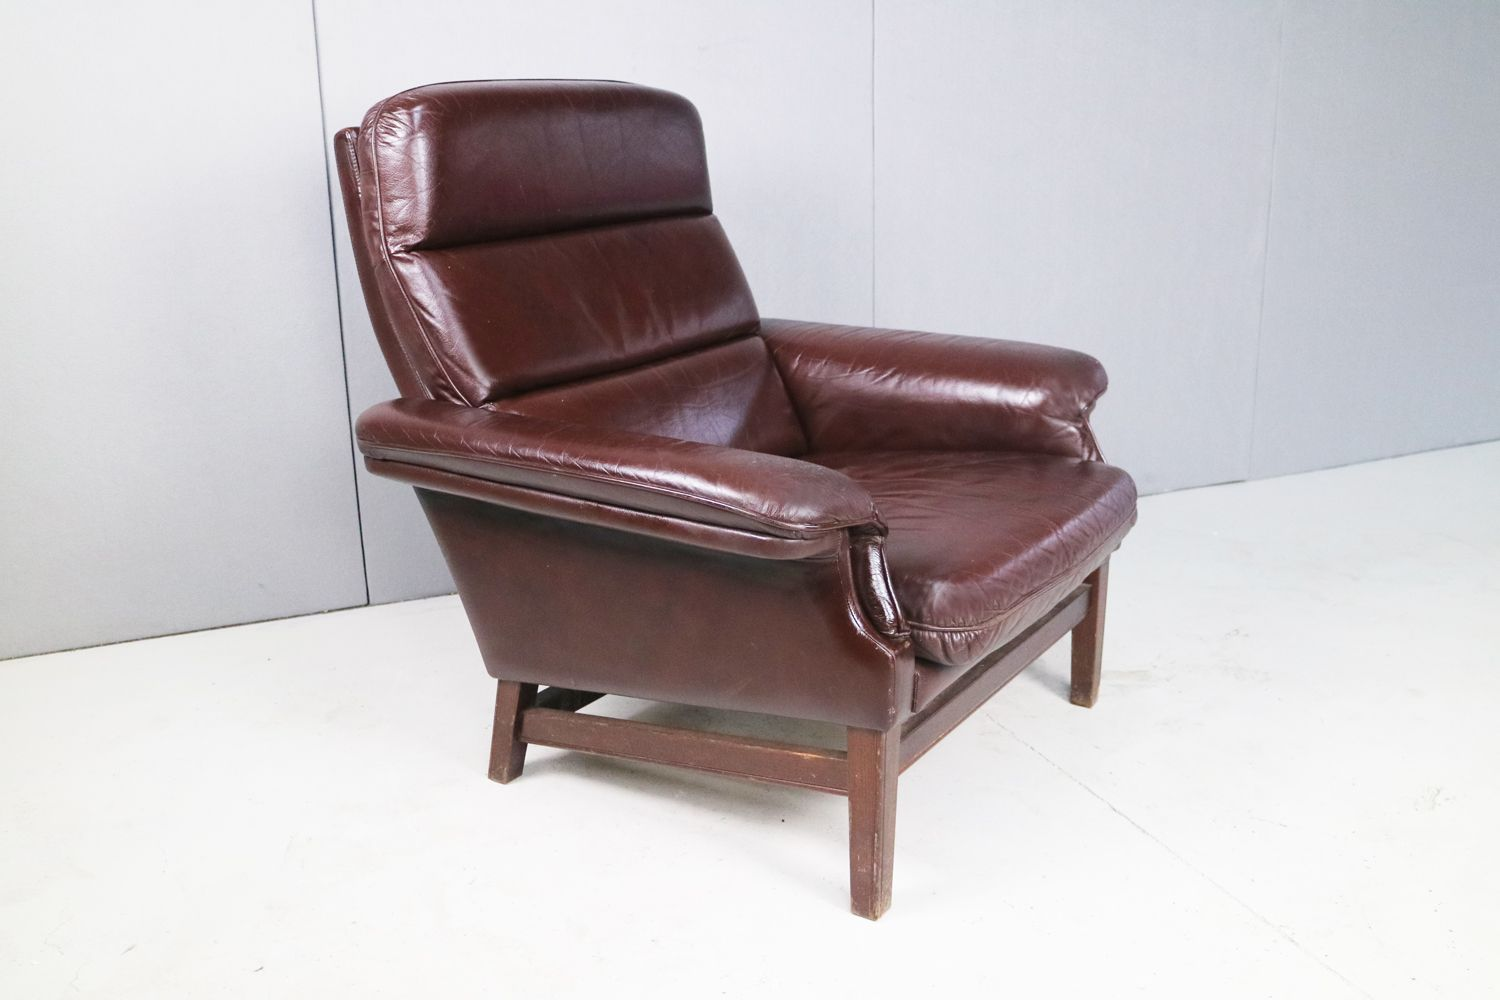 Mid Century Danish Chair Mid Century Danish Brown Leather Club Chair For Sale At Pamono